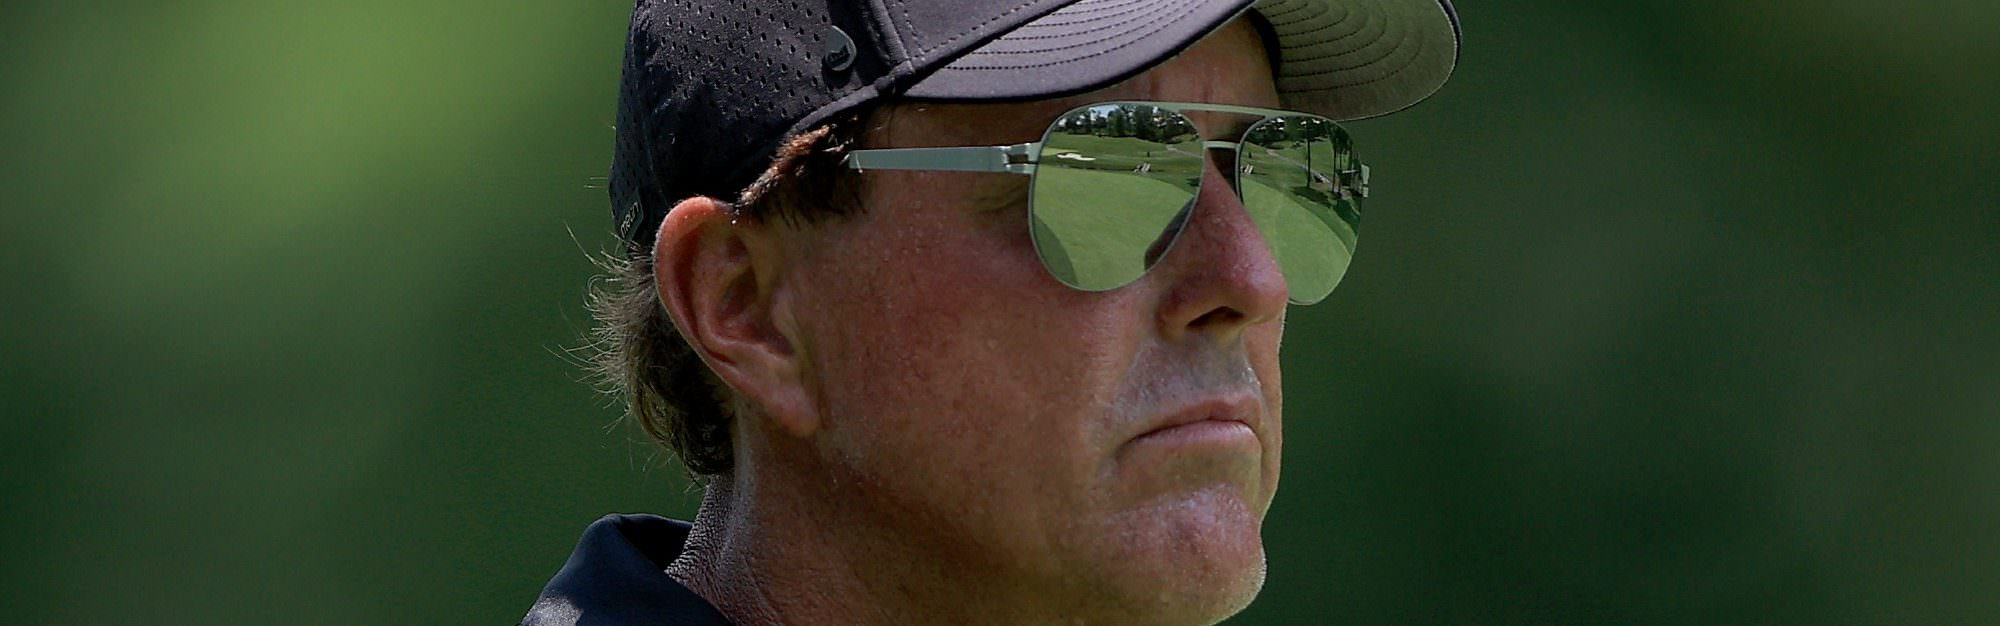 Phil Mickelson 2021 schedule: Where will he play next?